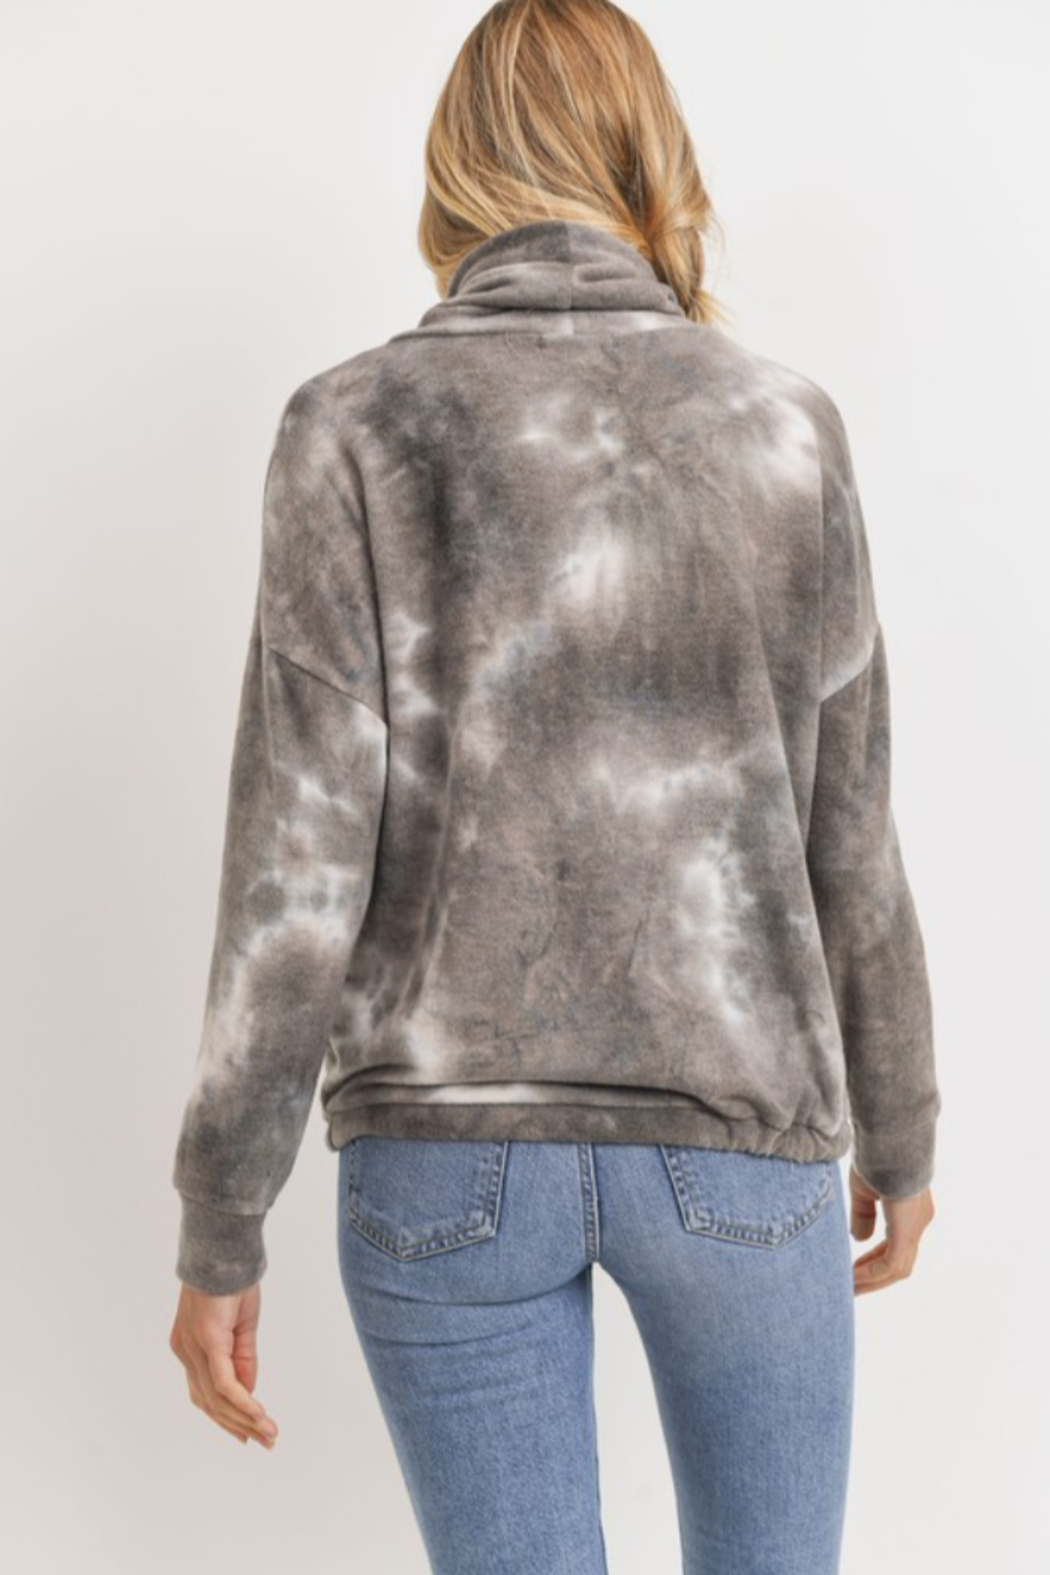 Cherish Cowl Neck Brushed Knit Tie Dye Pullover - Side Cropped Image